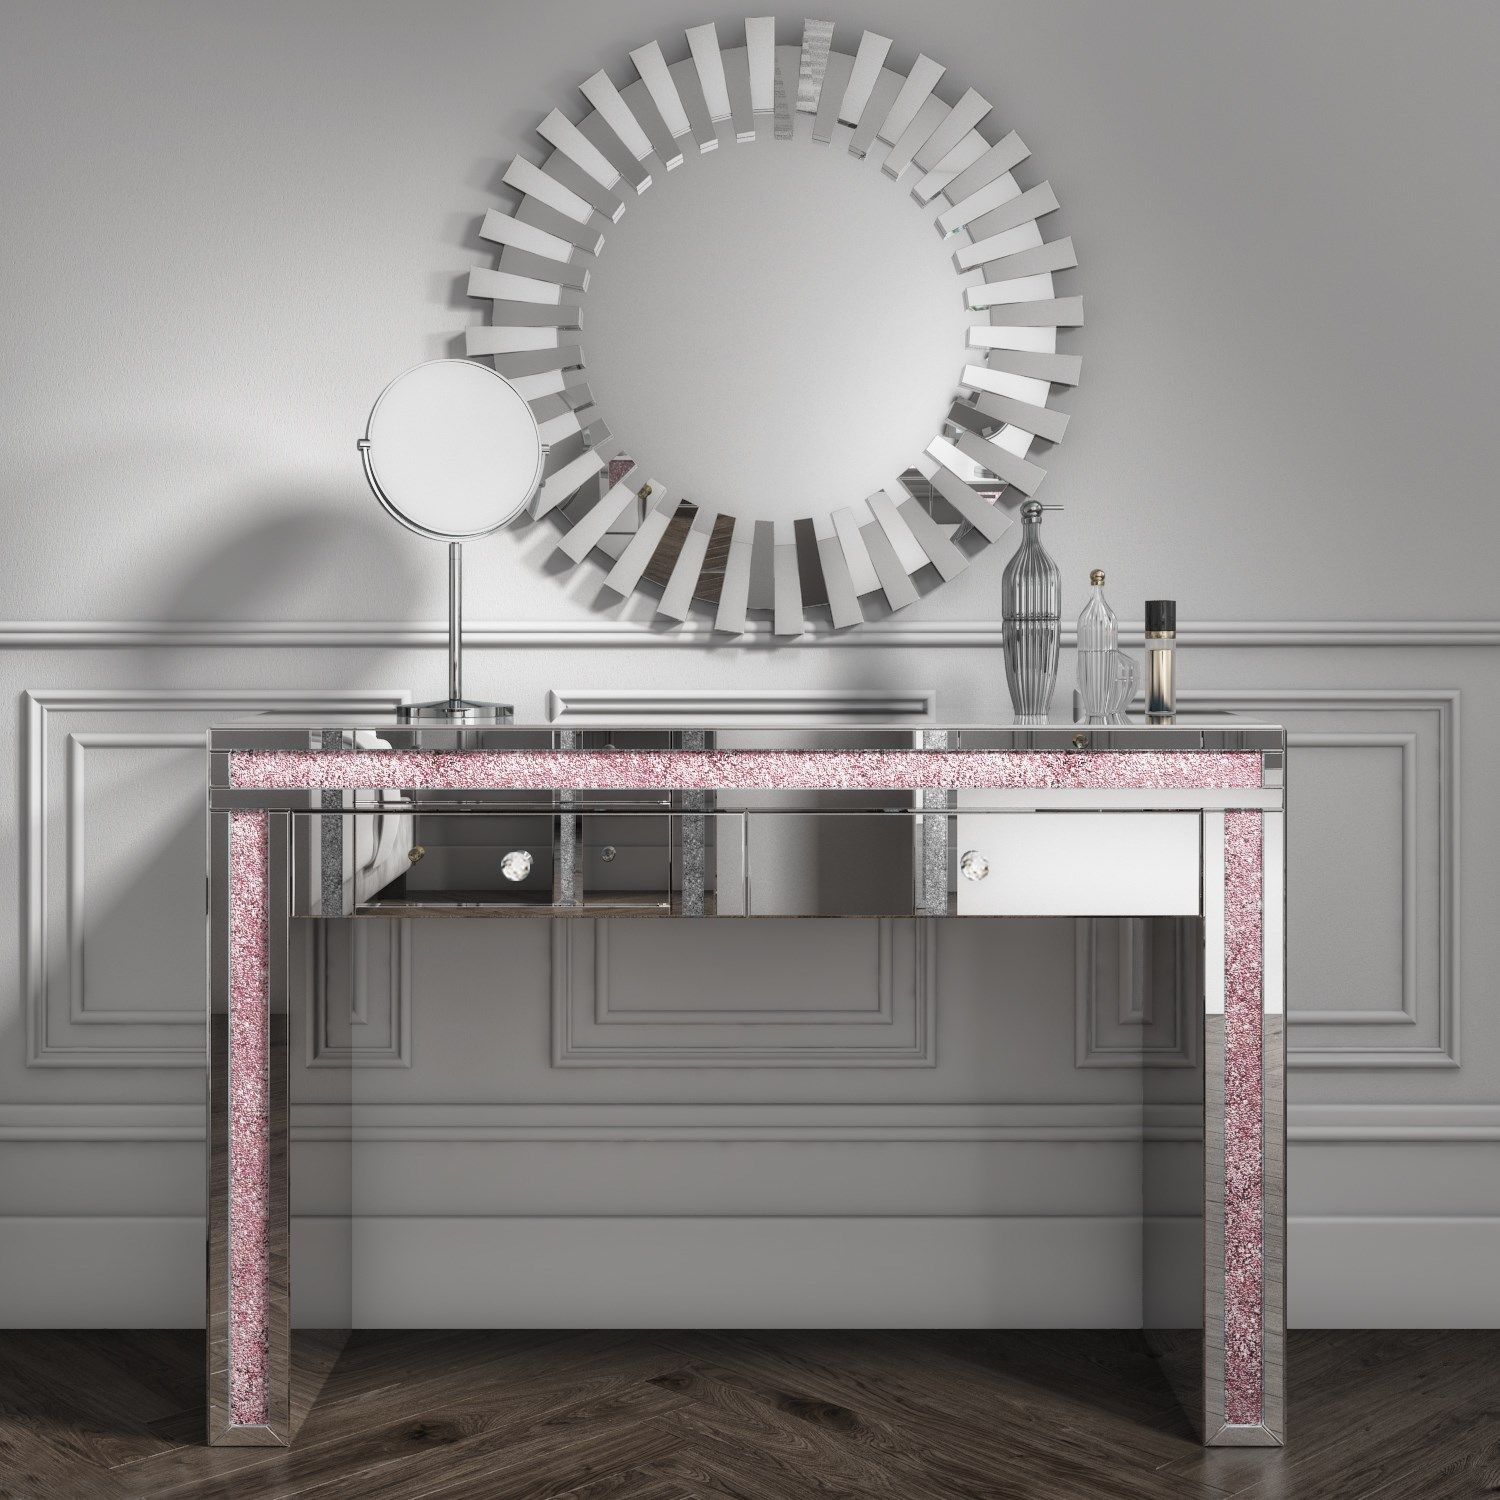 Decorative Mirror Table Outlet Mirrors The Online Decorative Mirror Superstore